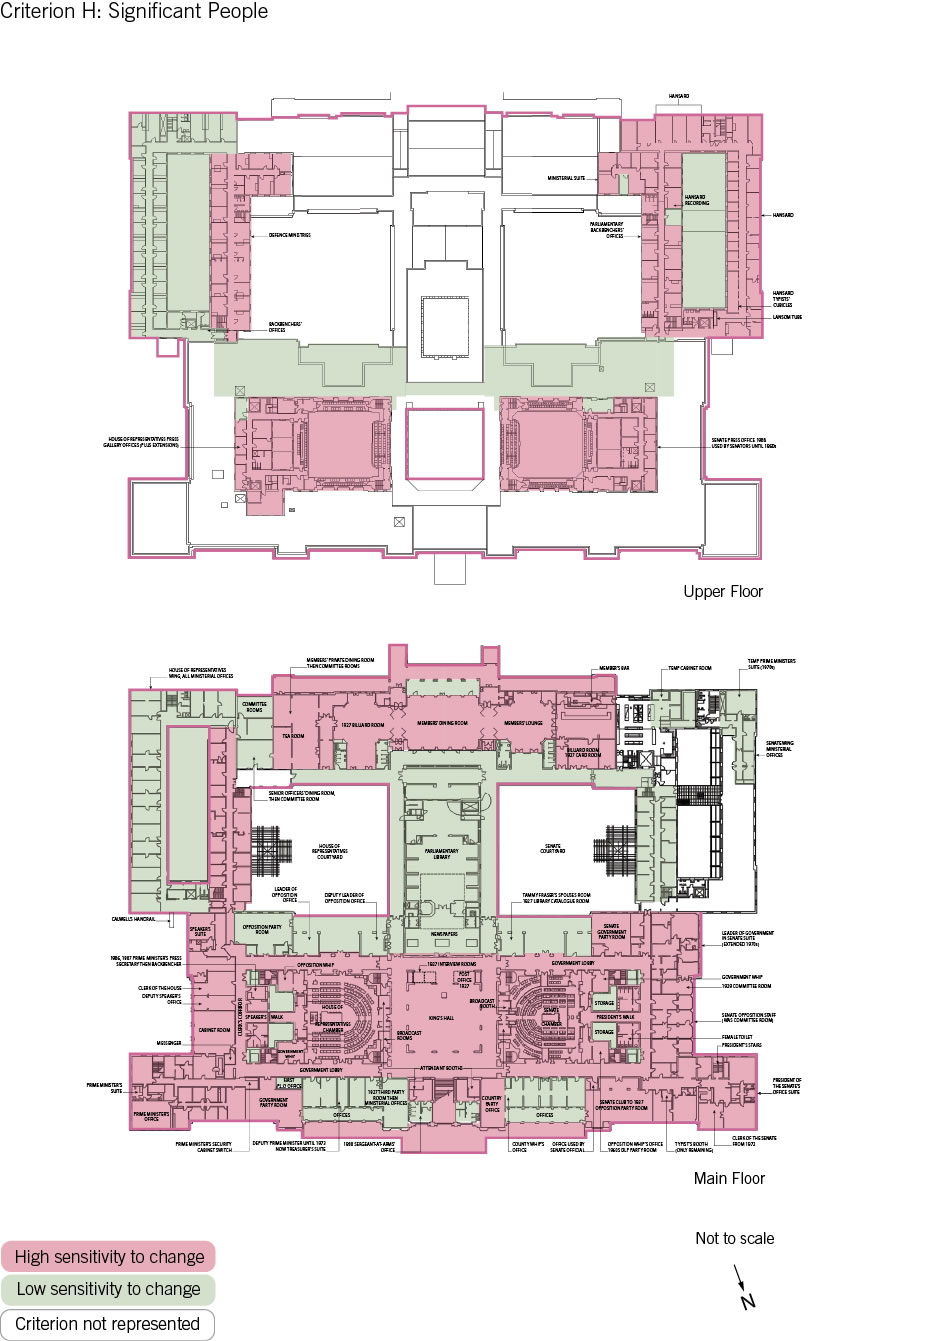 Old Parliament House upper and main floor plan showing the zones according to criterion H: significant people.